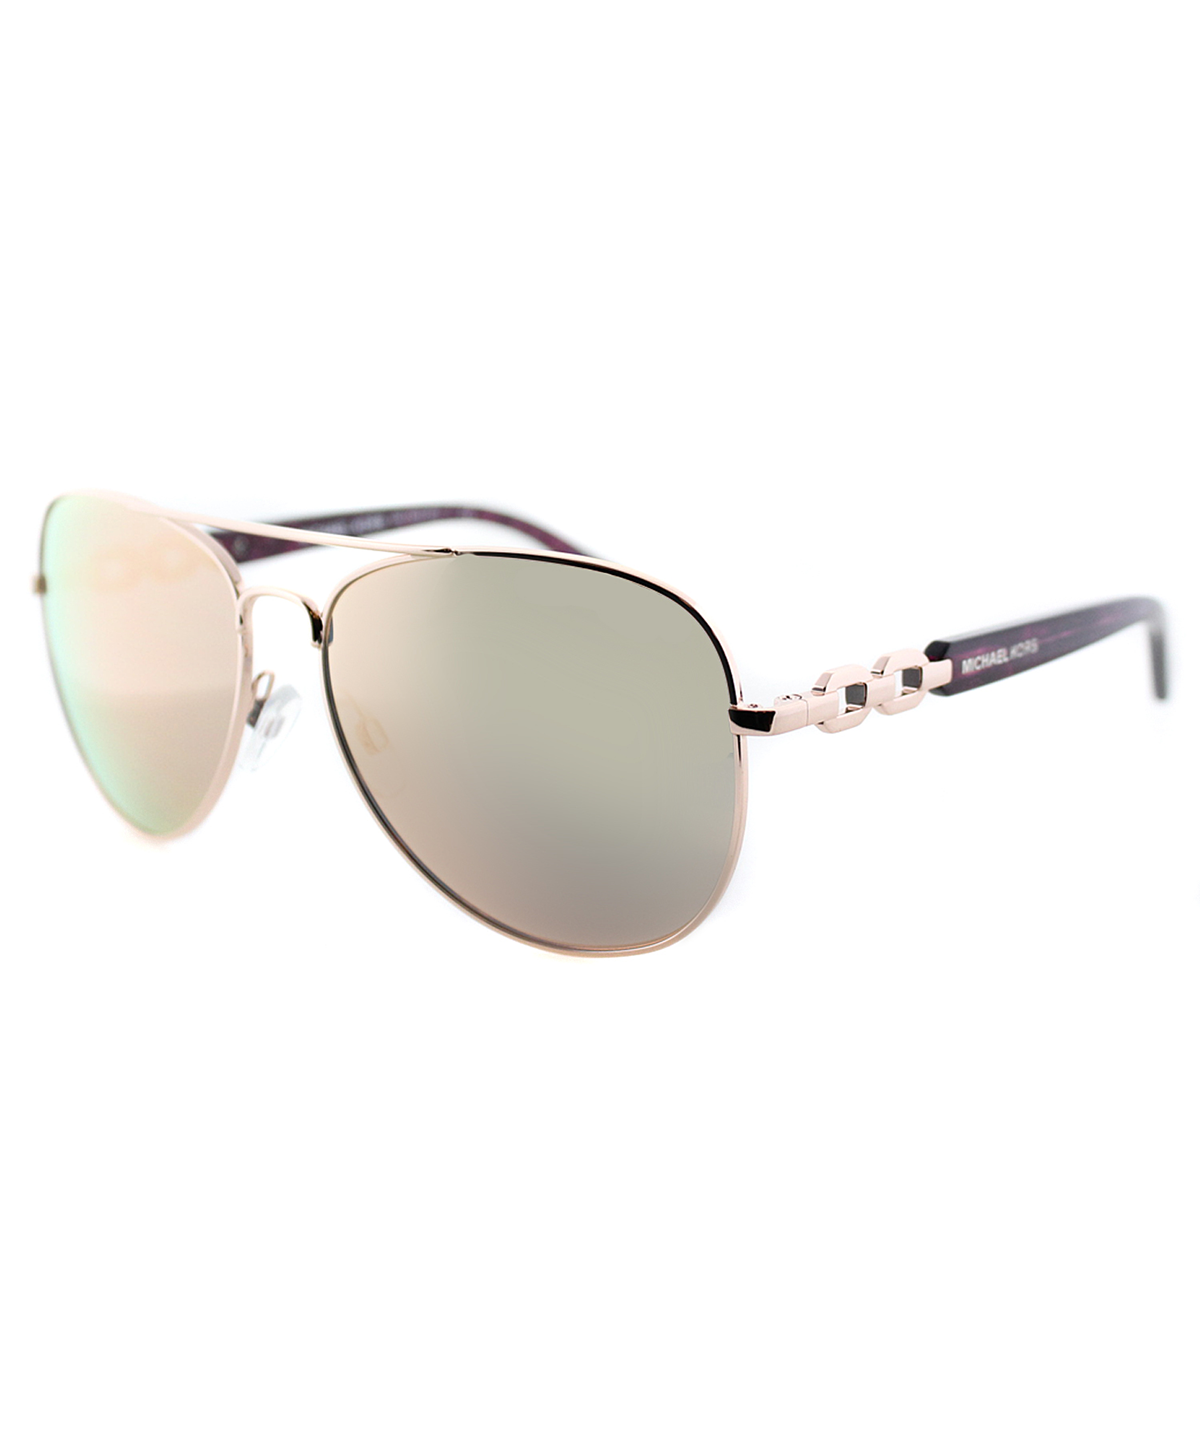 Michael Kors Fiji Pilot Metal Sunglasses In Rose Gold